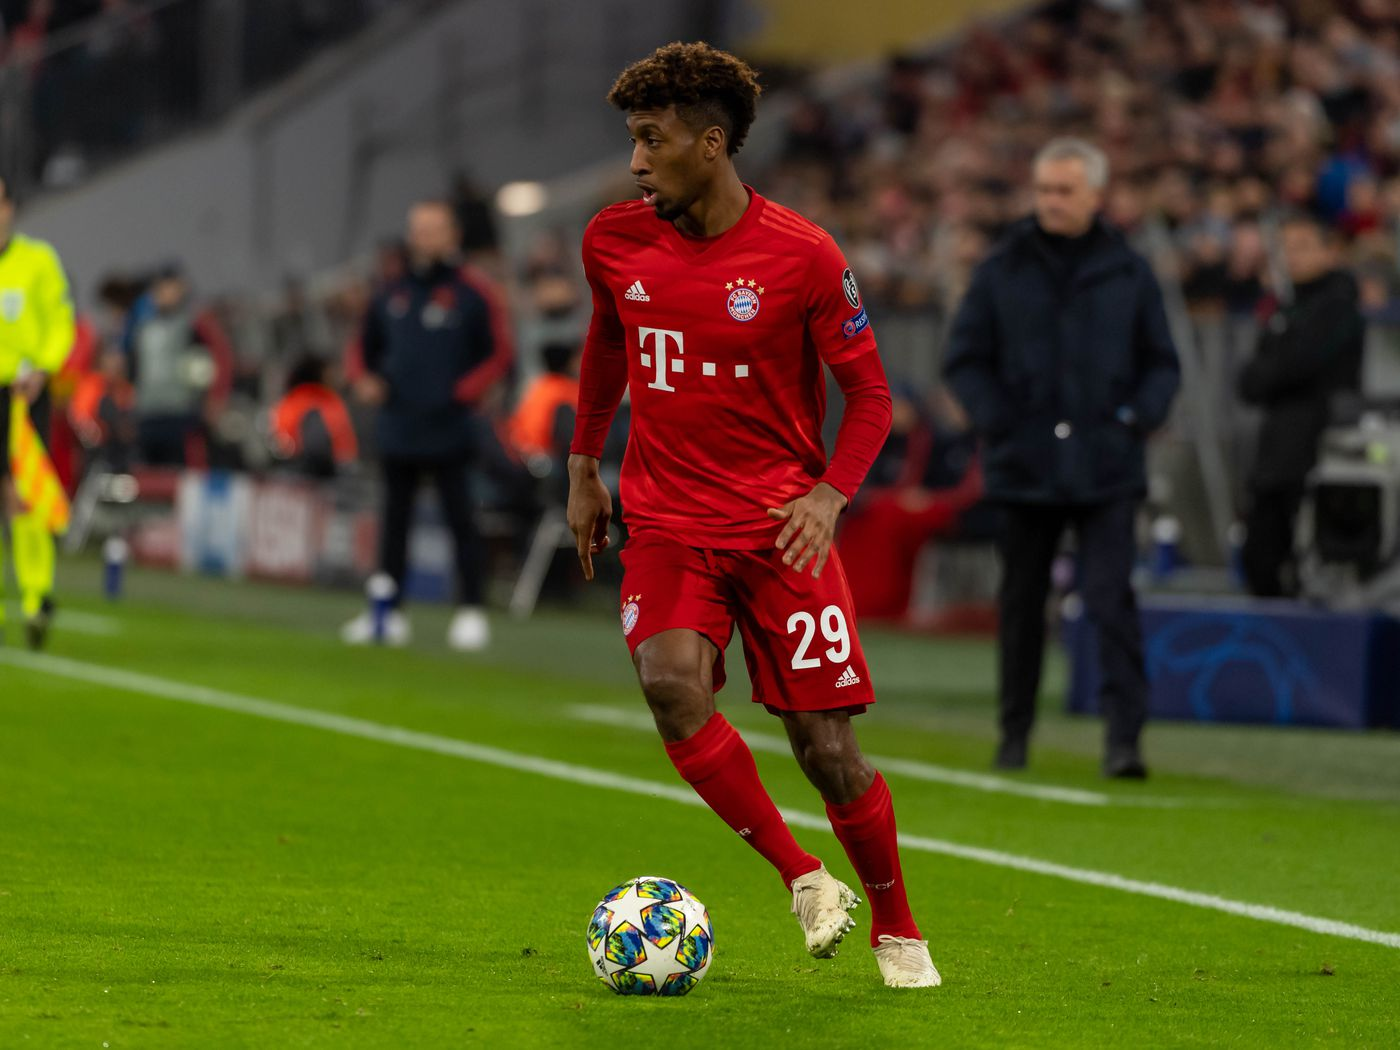 Liverpool could make a move for Manchester United target Kingsley Coman.